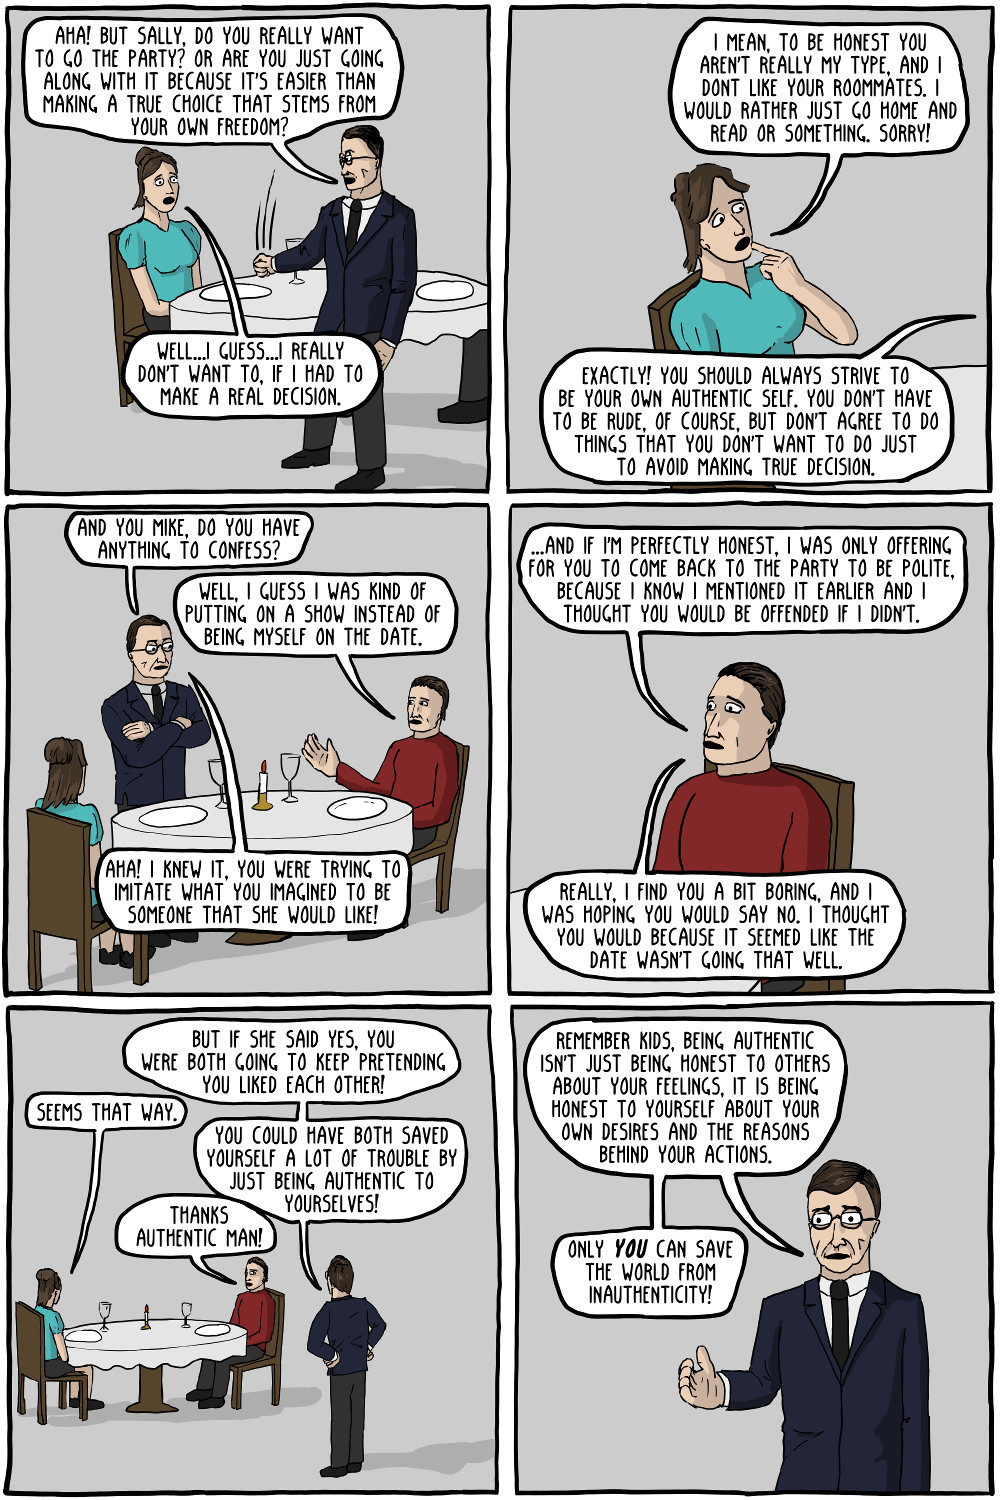 The Adventures of Authentic Man [Comic] | Critical-Theory com